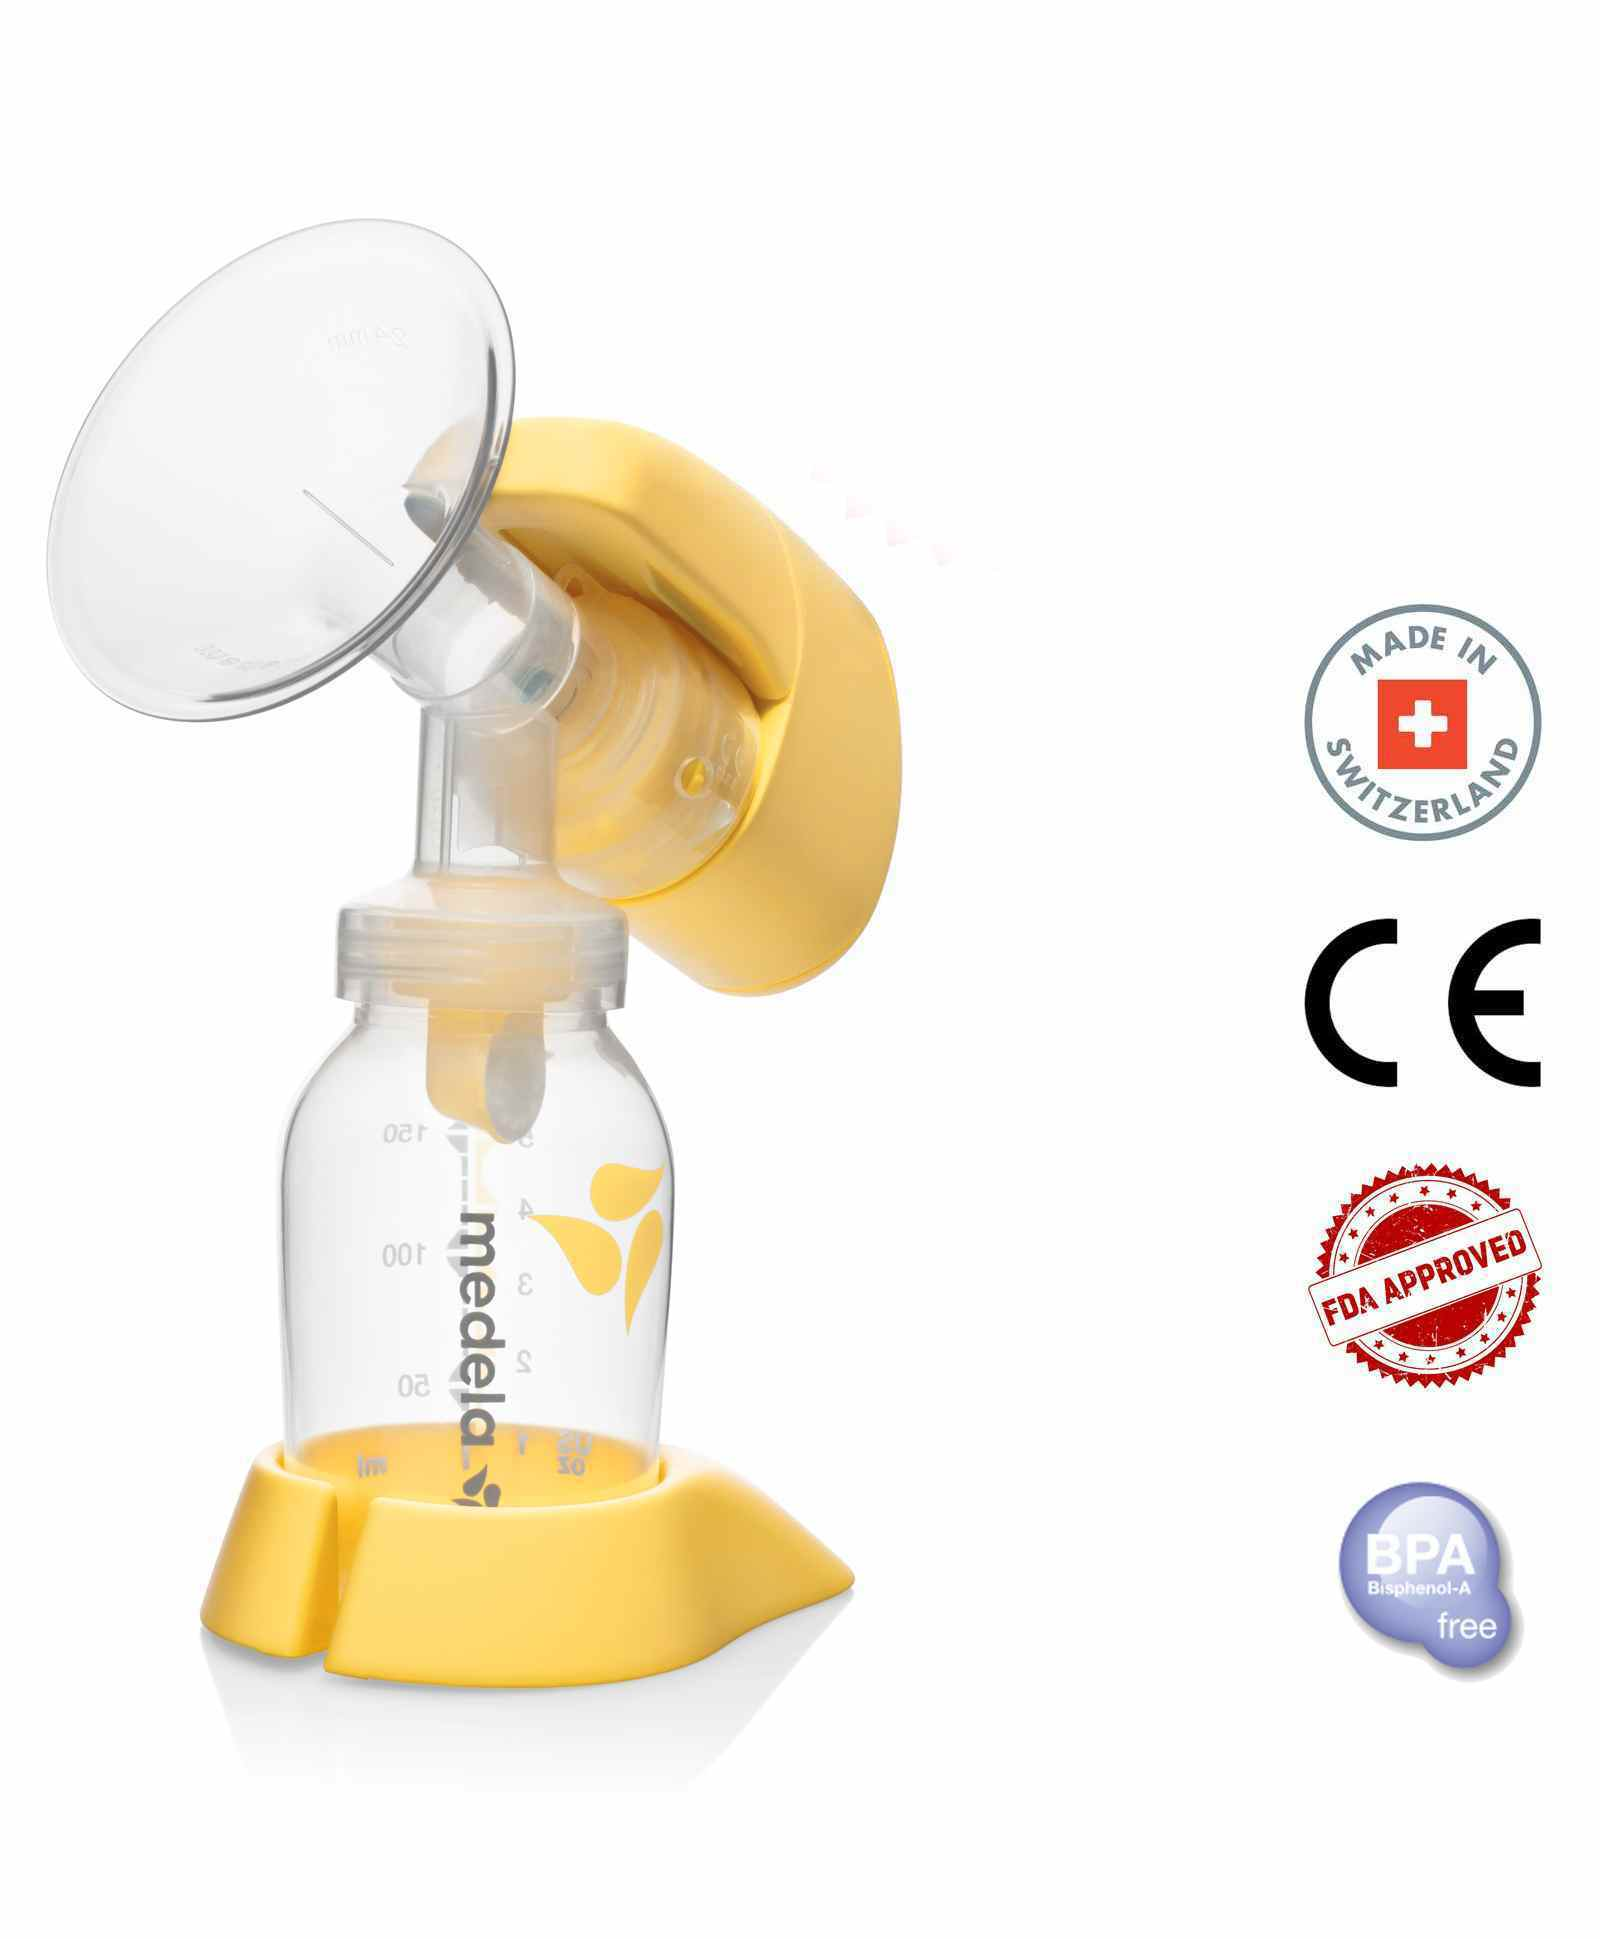 Medela Mini Electric Breast Pump Online In India, Buy At -5429